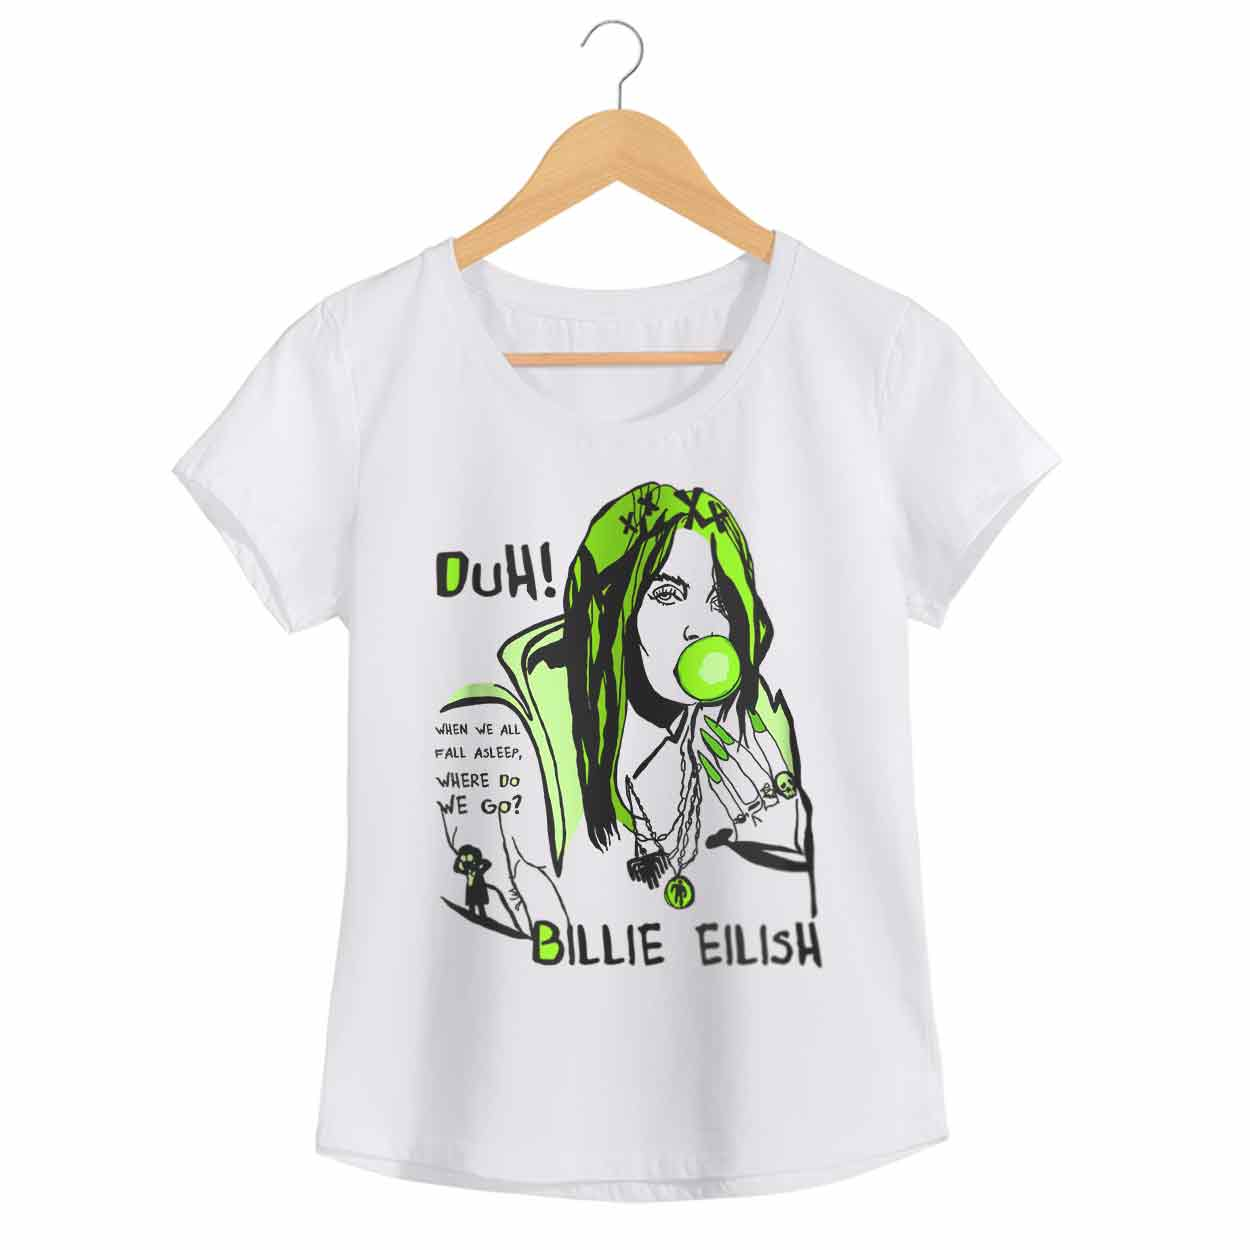 Camiseta When We All Fall Asleep, Where Do We Go? - Billie Eilish - Feminino